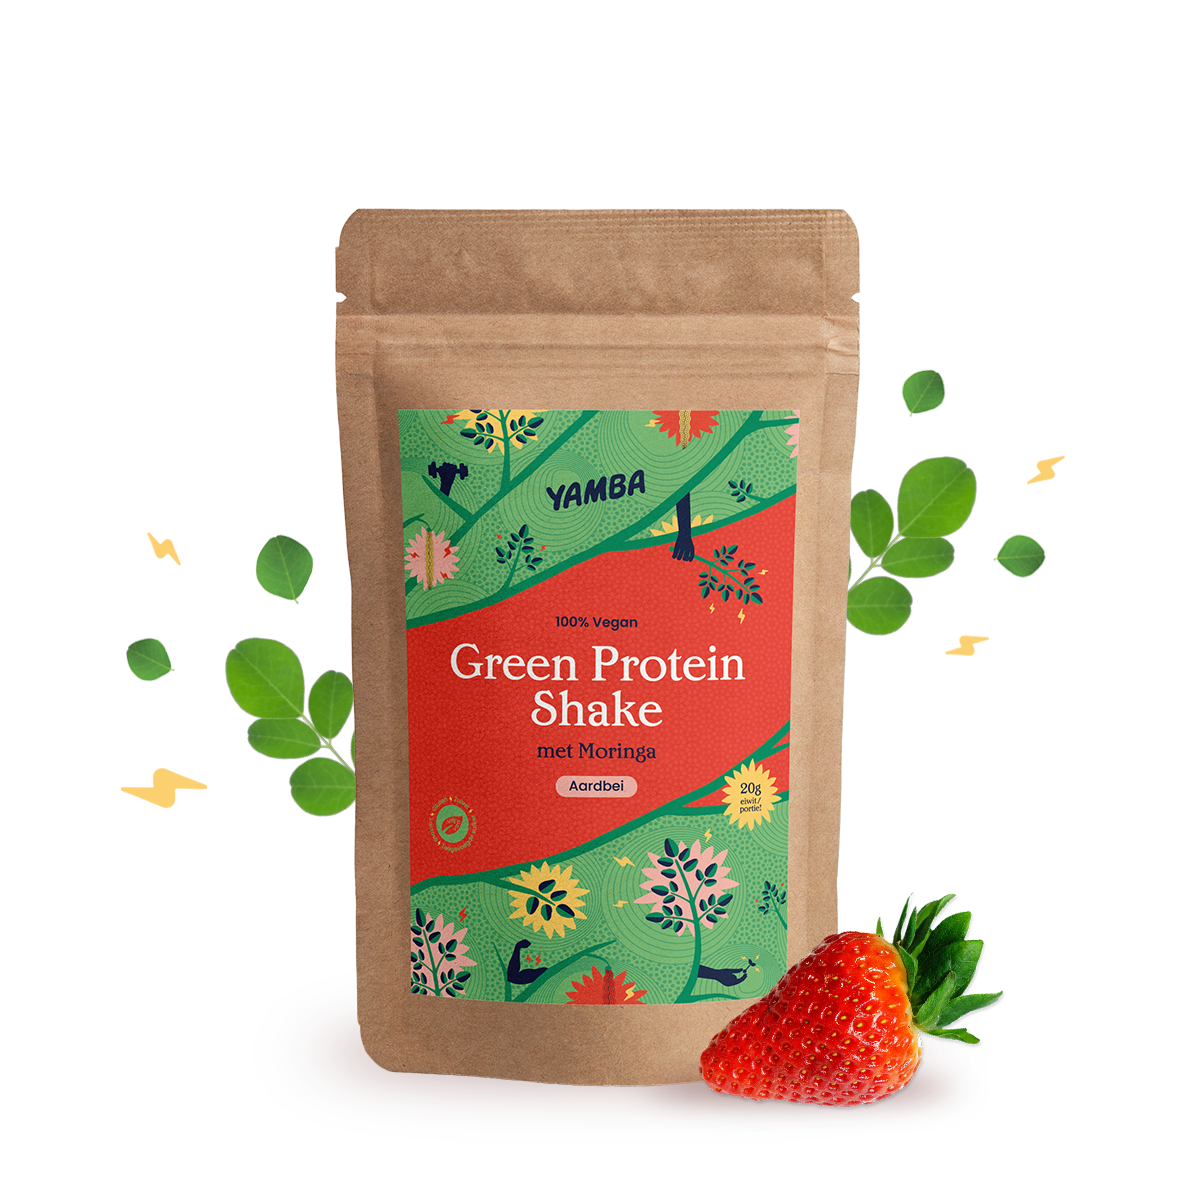 Green Protein Shake Strawberry (1kg) packaging